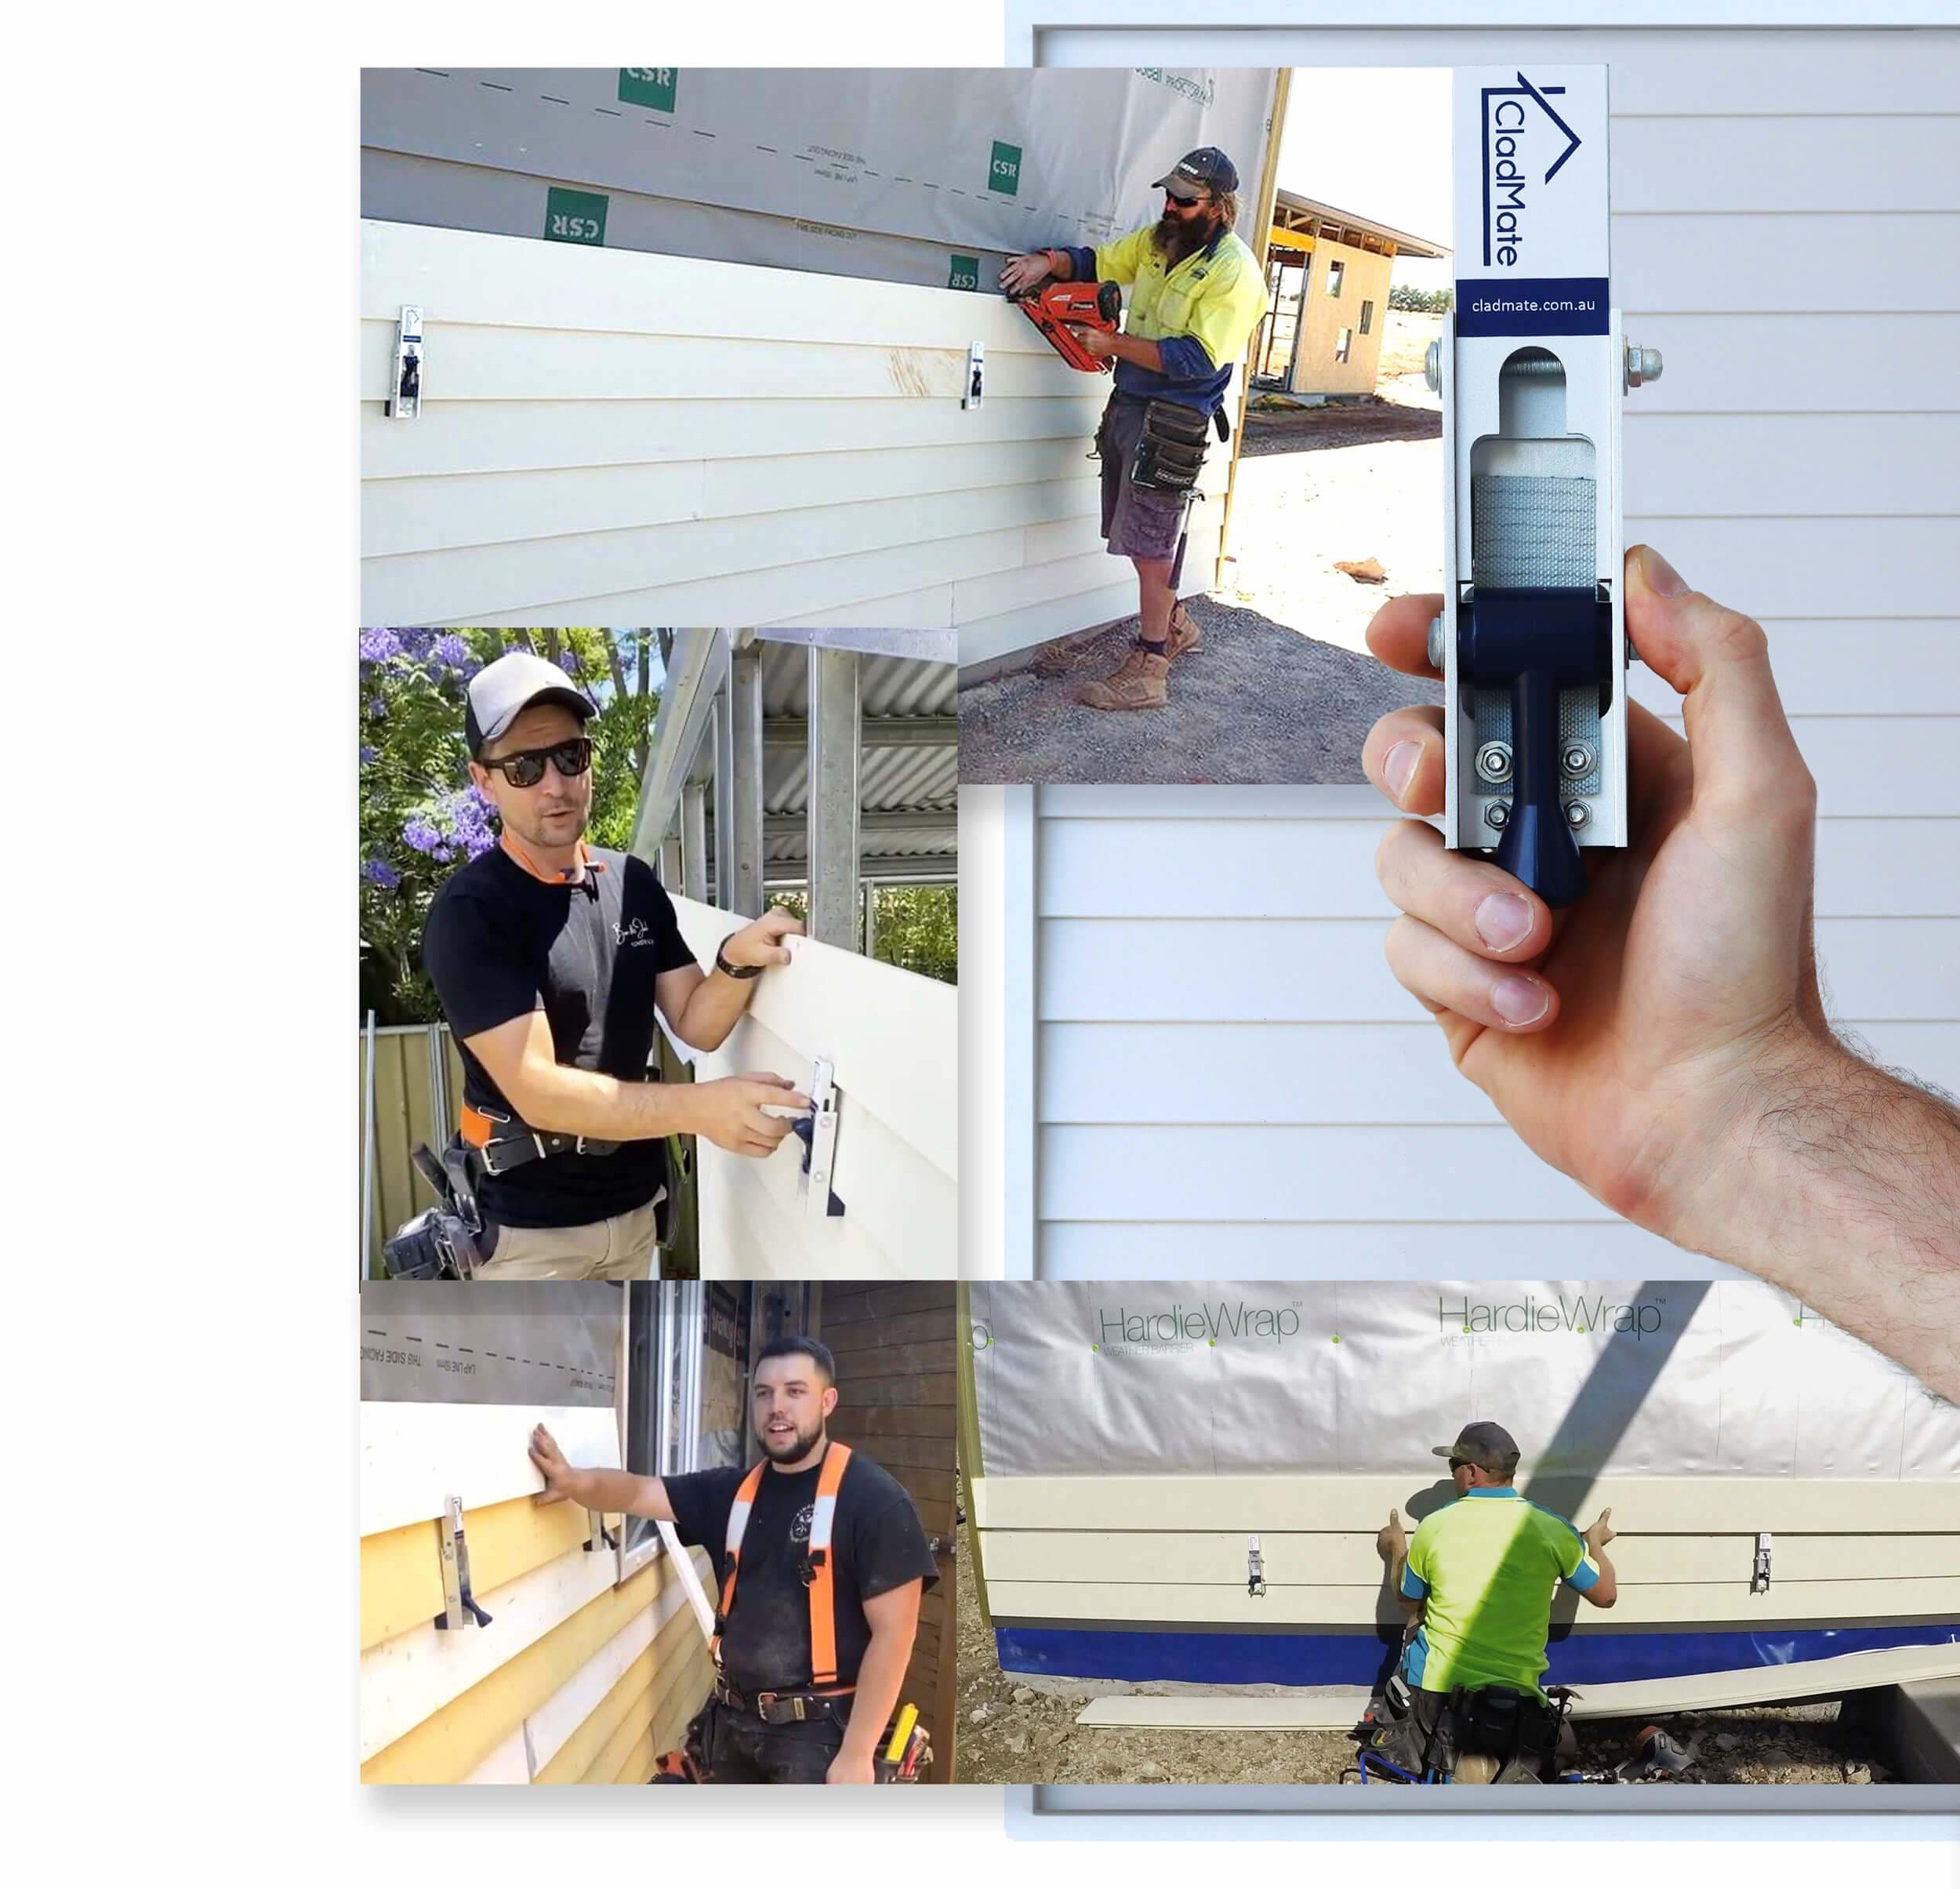 CladMate Gallery of Carpenters Using CladMate on Weatherboards